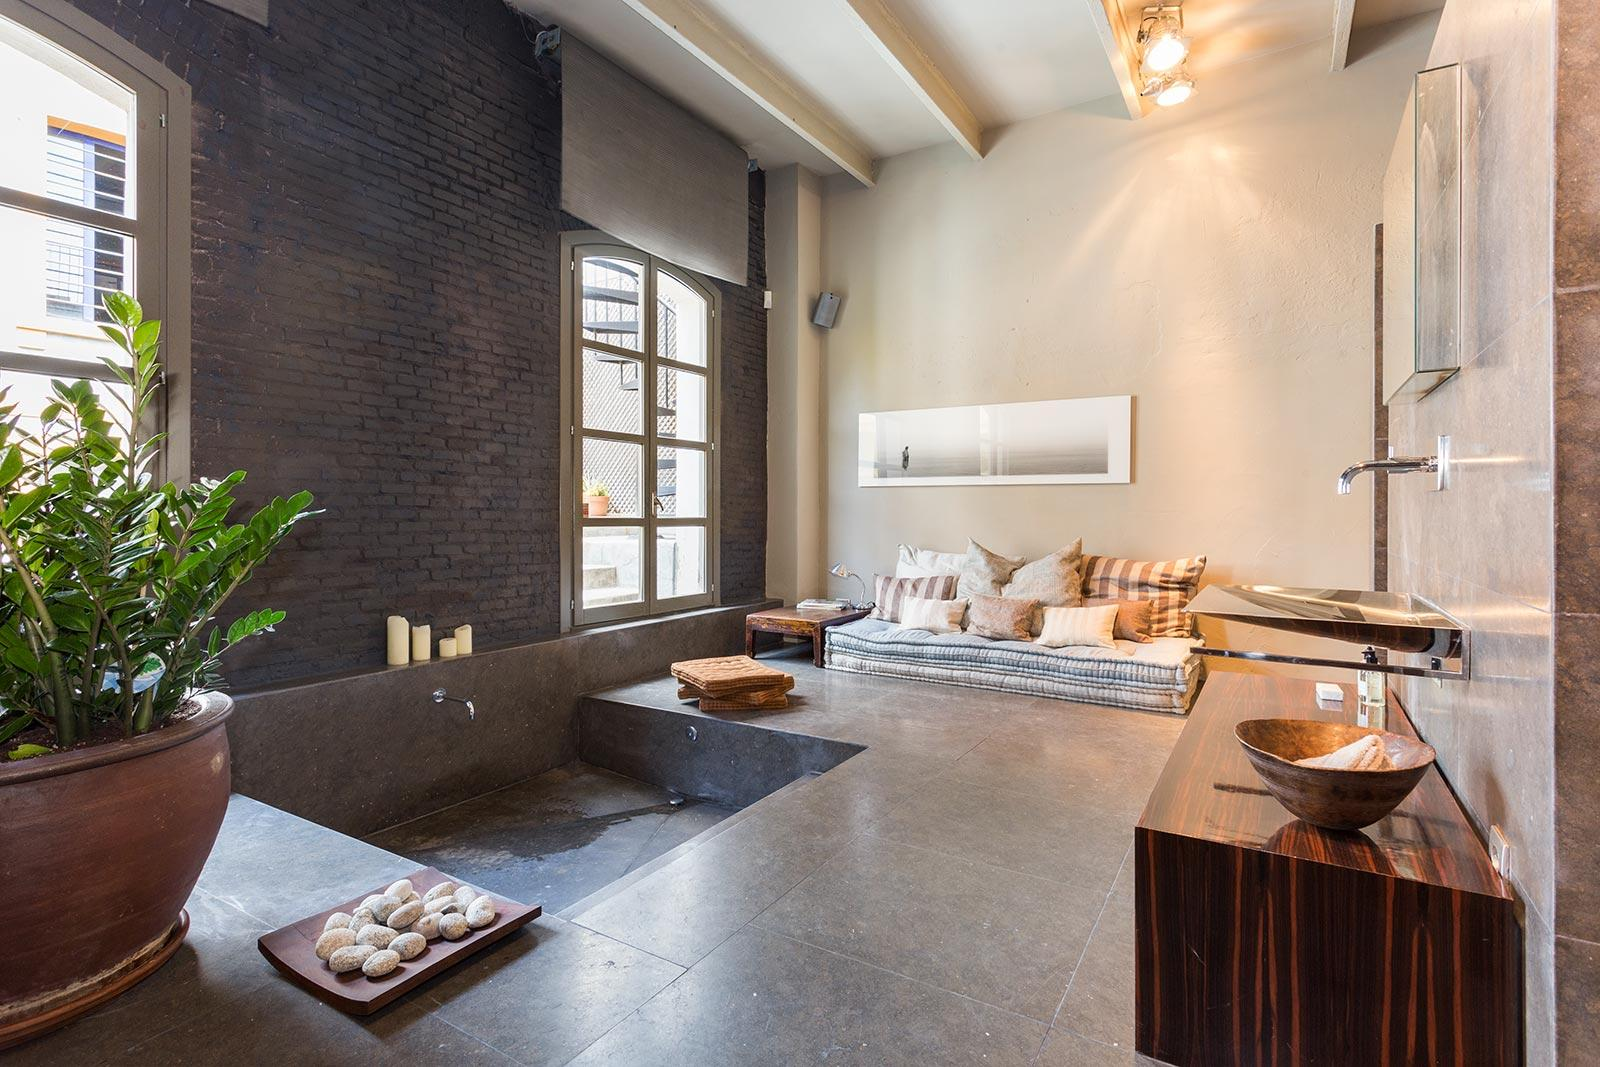 10. Stylish apartment for sale in Barcelona city - Step Inside A One-Of-A-Kind Barcelona Apartment